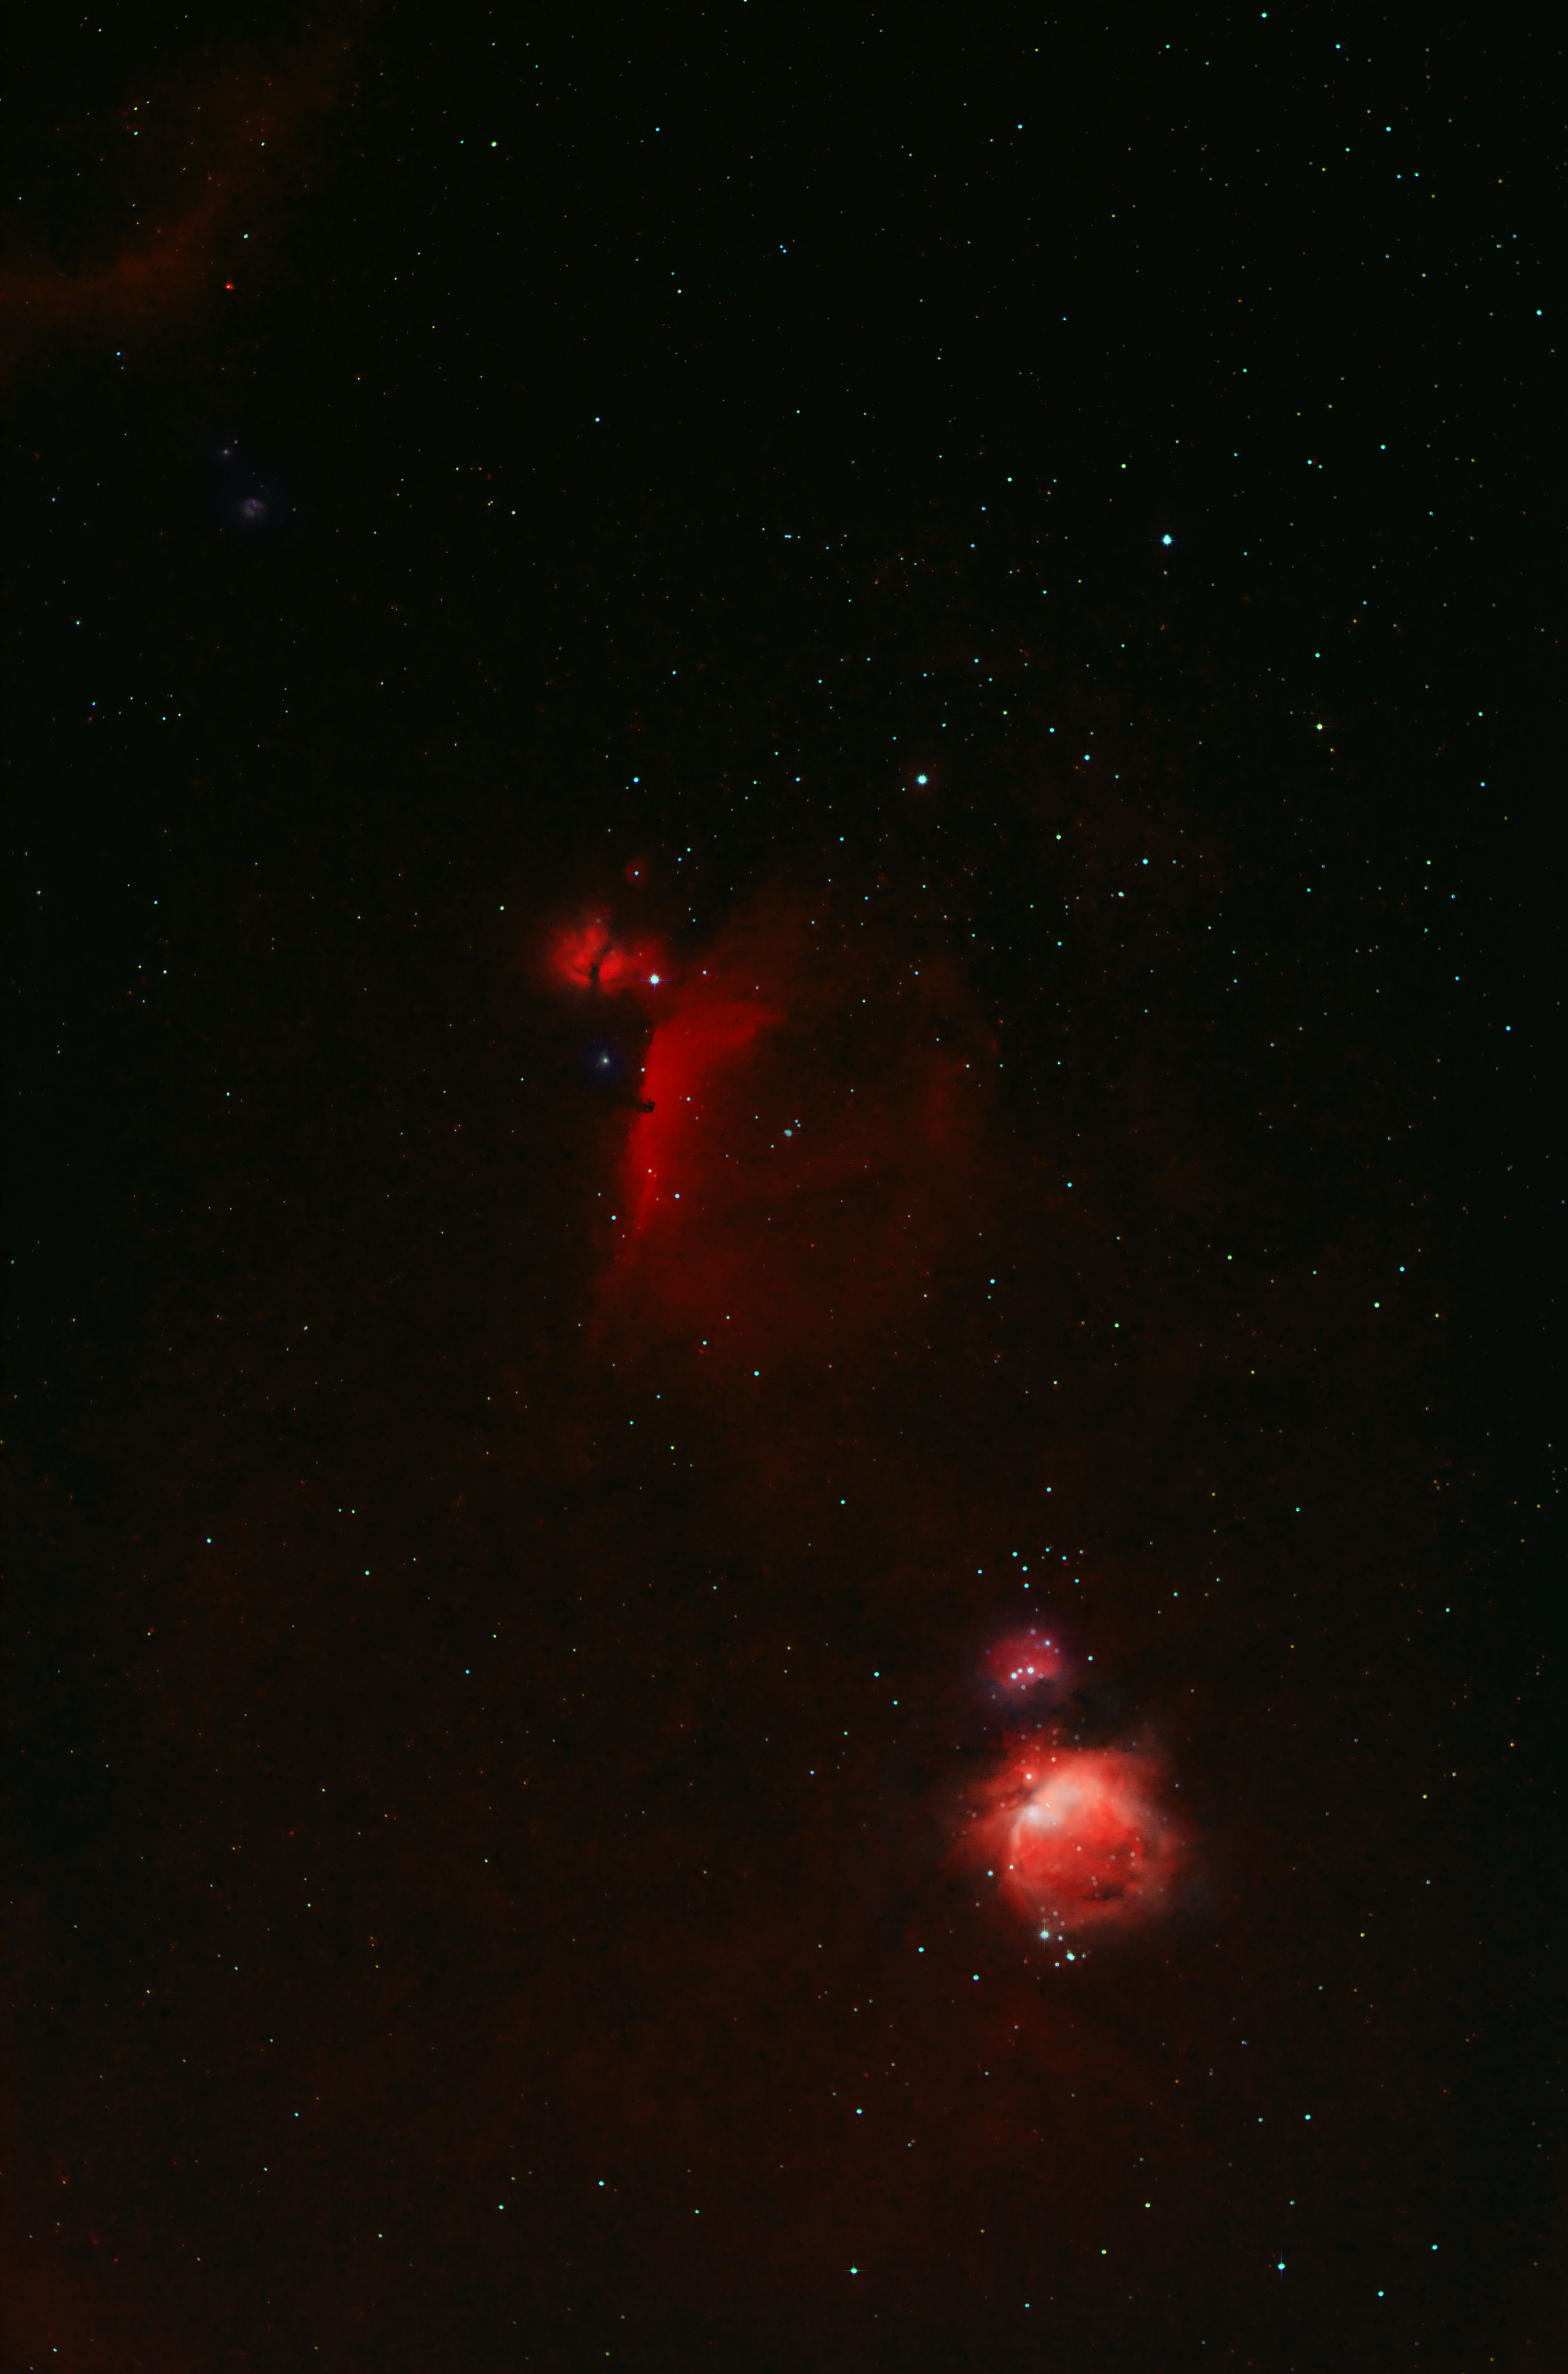 "The Belt of Orion   by Alan Clitherow. 29th January 2017.  20.50pm.  The image was taken with a Canon 600D and a 135 mm lens, lots of subframes at 1 minute and 4 minutes and a lot of processing in Photoshop.  ""Was out on the evening of the 29th taking some wide-field views of M42 and the belt of Orion. One of my daughters wanted a picture of the three stars making up the belt as these were the first stars she learned to recognize for herself. The image was taken with a Canon 600D and a 135 mm lens, lots of subframes at 1 minute and 4 minutes and a lot of processing but it came out about how I wanted. Hope its of interest."""